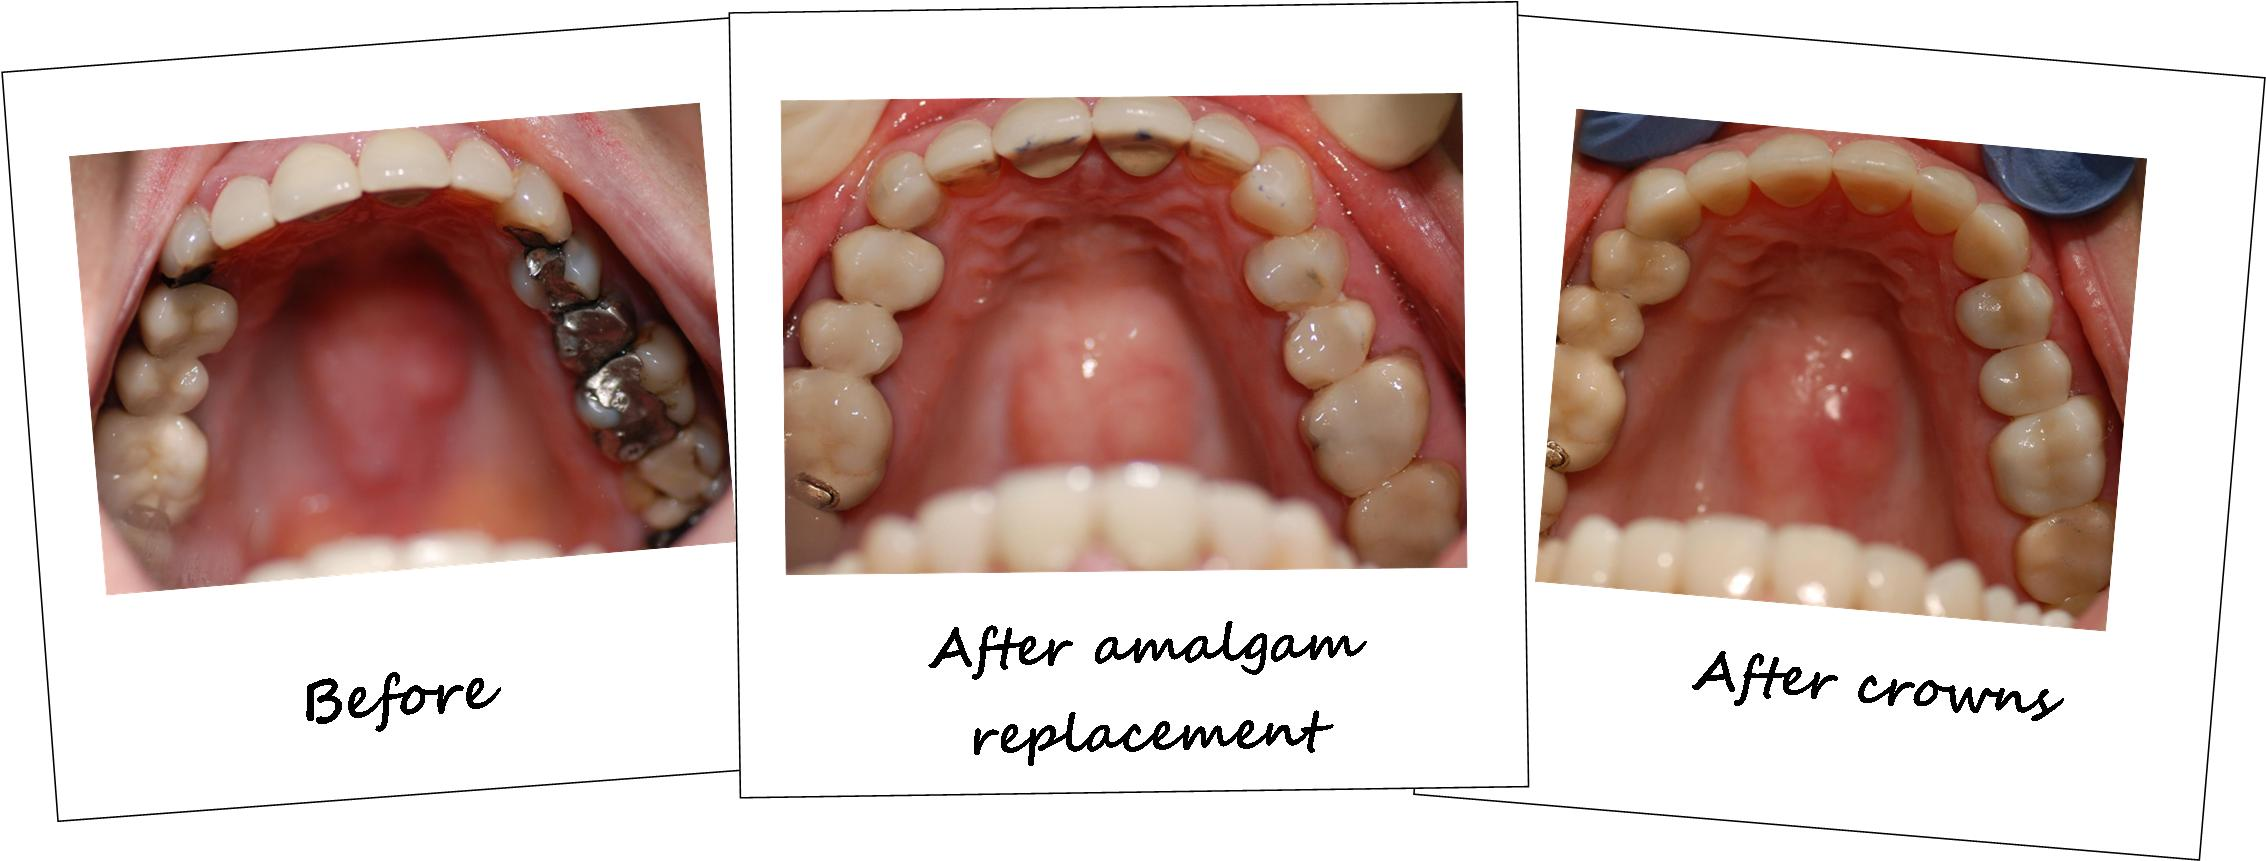 amalgam-replacement-crowns